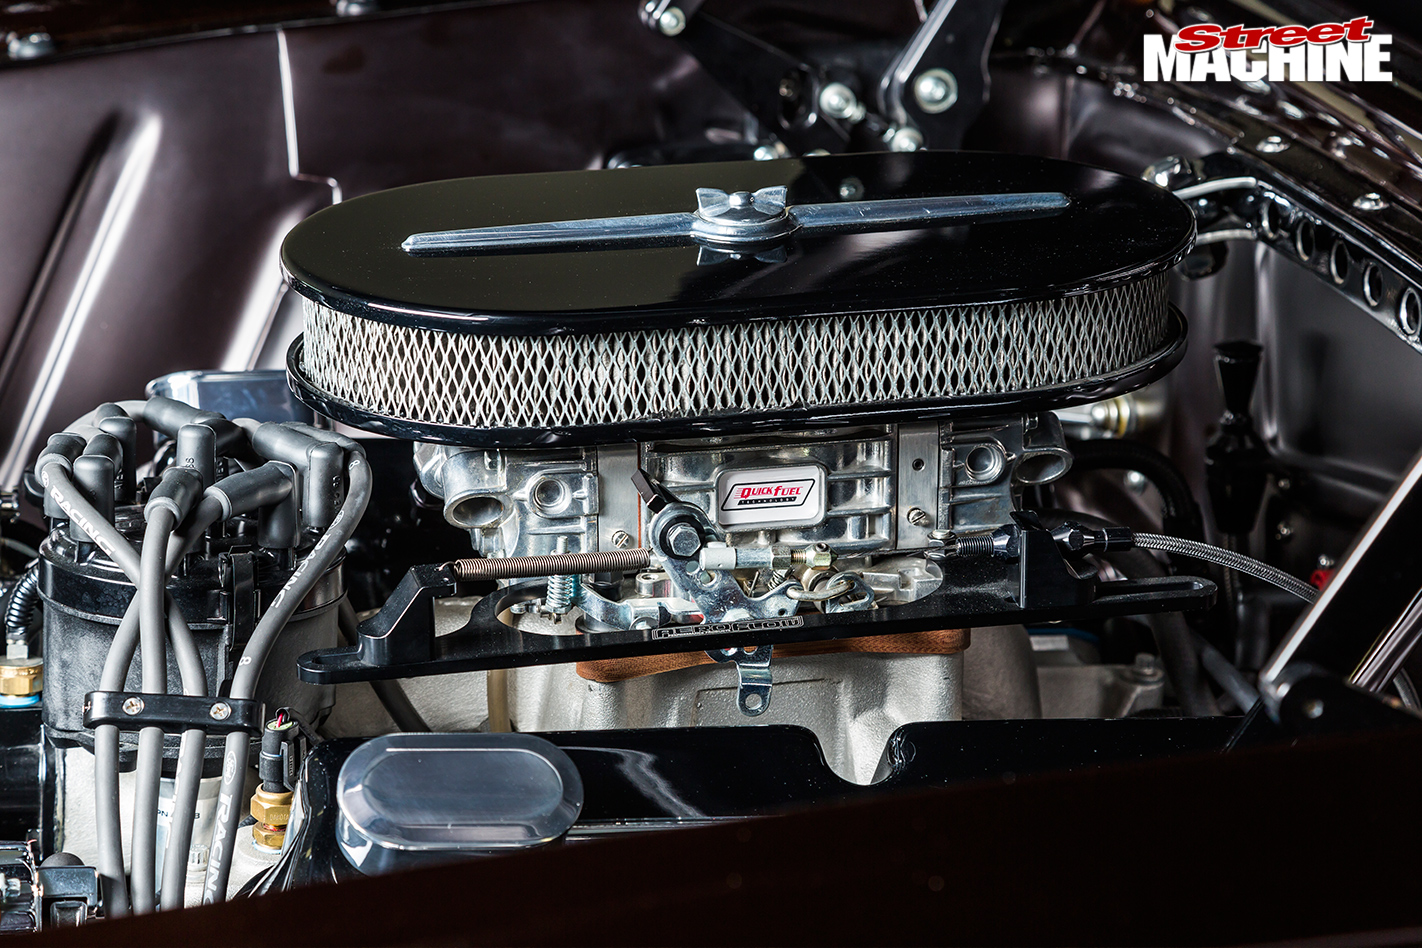 Ford -falcon -xp -engine -detail